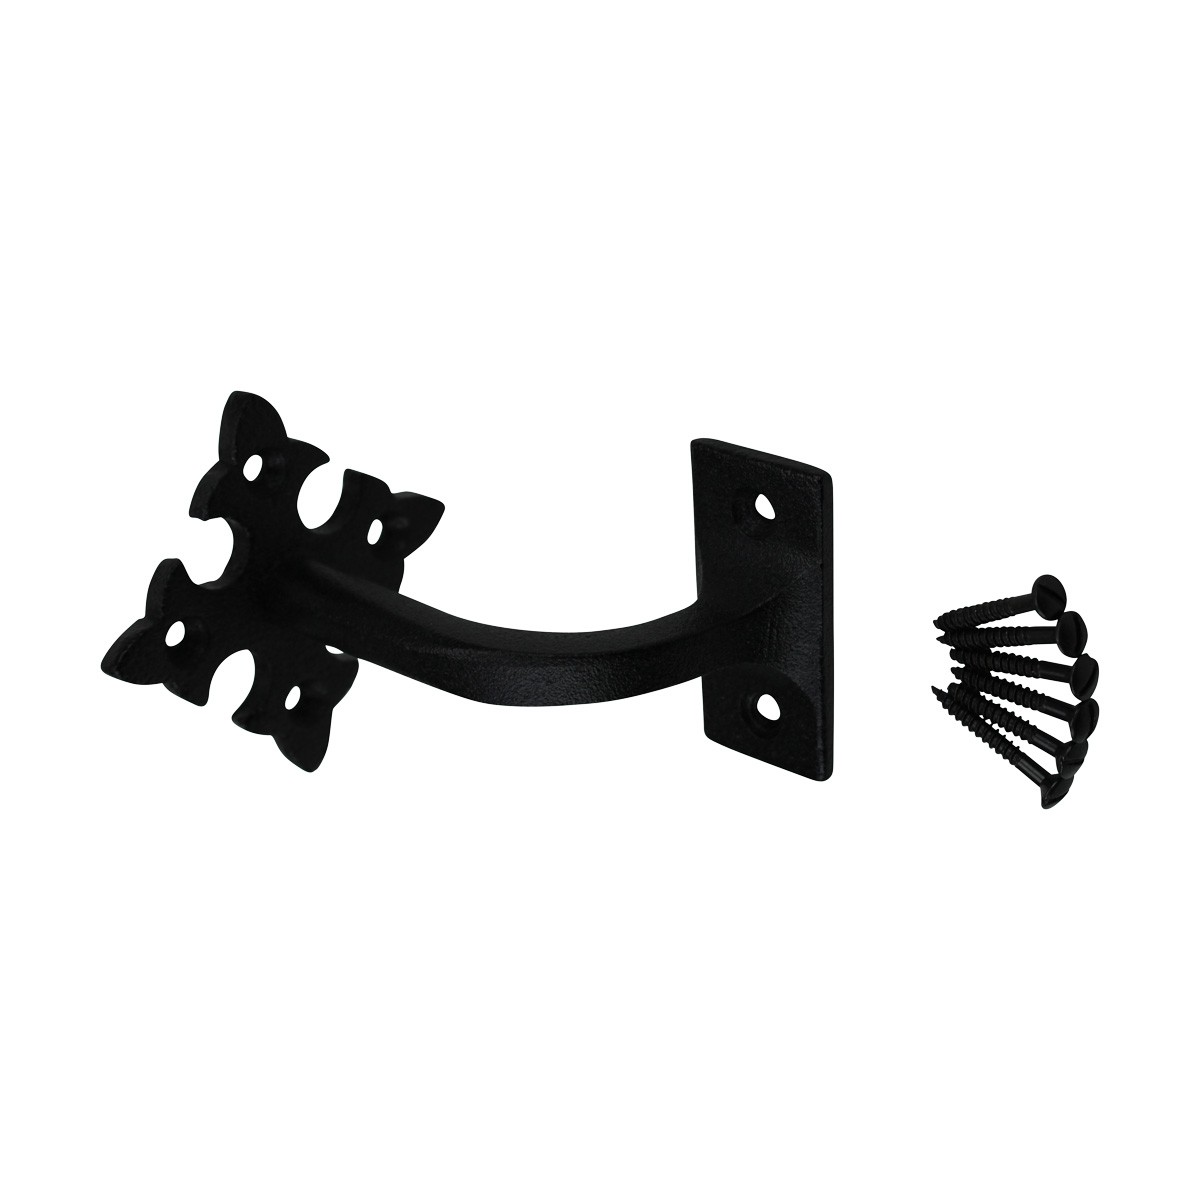 Stair Hand Rail Bracket Black Cast Wrought Iron Handrail Bracket Handrail Bracket Black Staircase Handrail Bracket